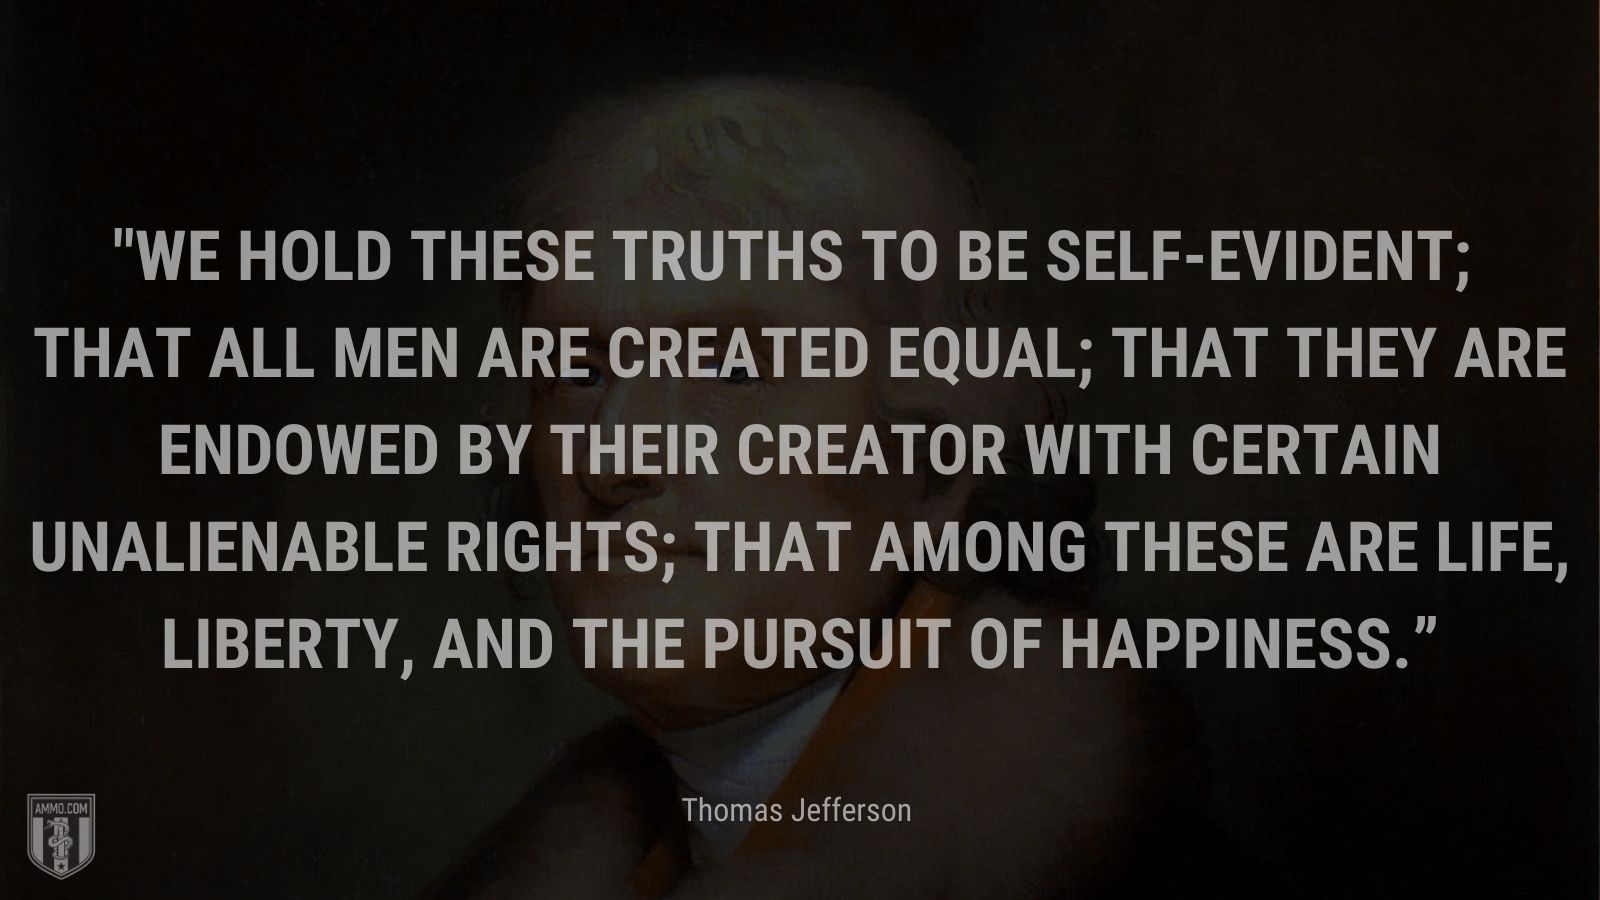 """""""We hold these truths to be self-evident; that all men are created equal; that they are endowed by their creator with certain unalienable rights; that among these are life, liberty, and the pursuit of happiness."""" - Thomas Jefferson"""